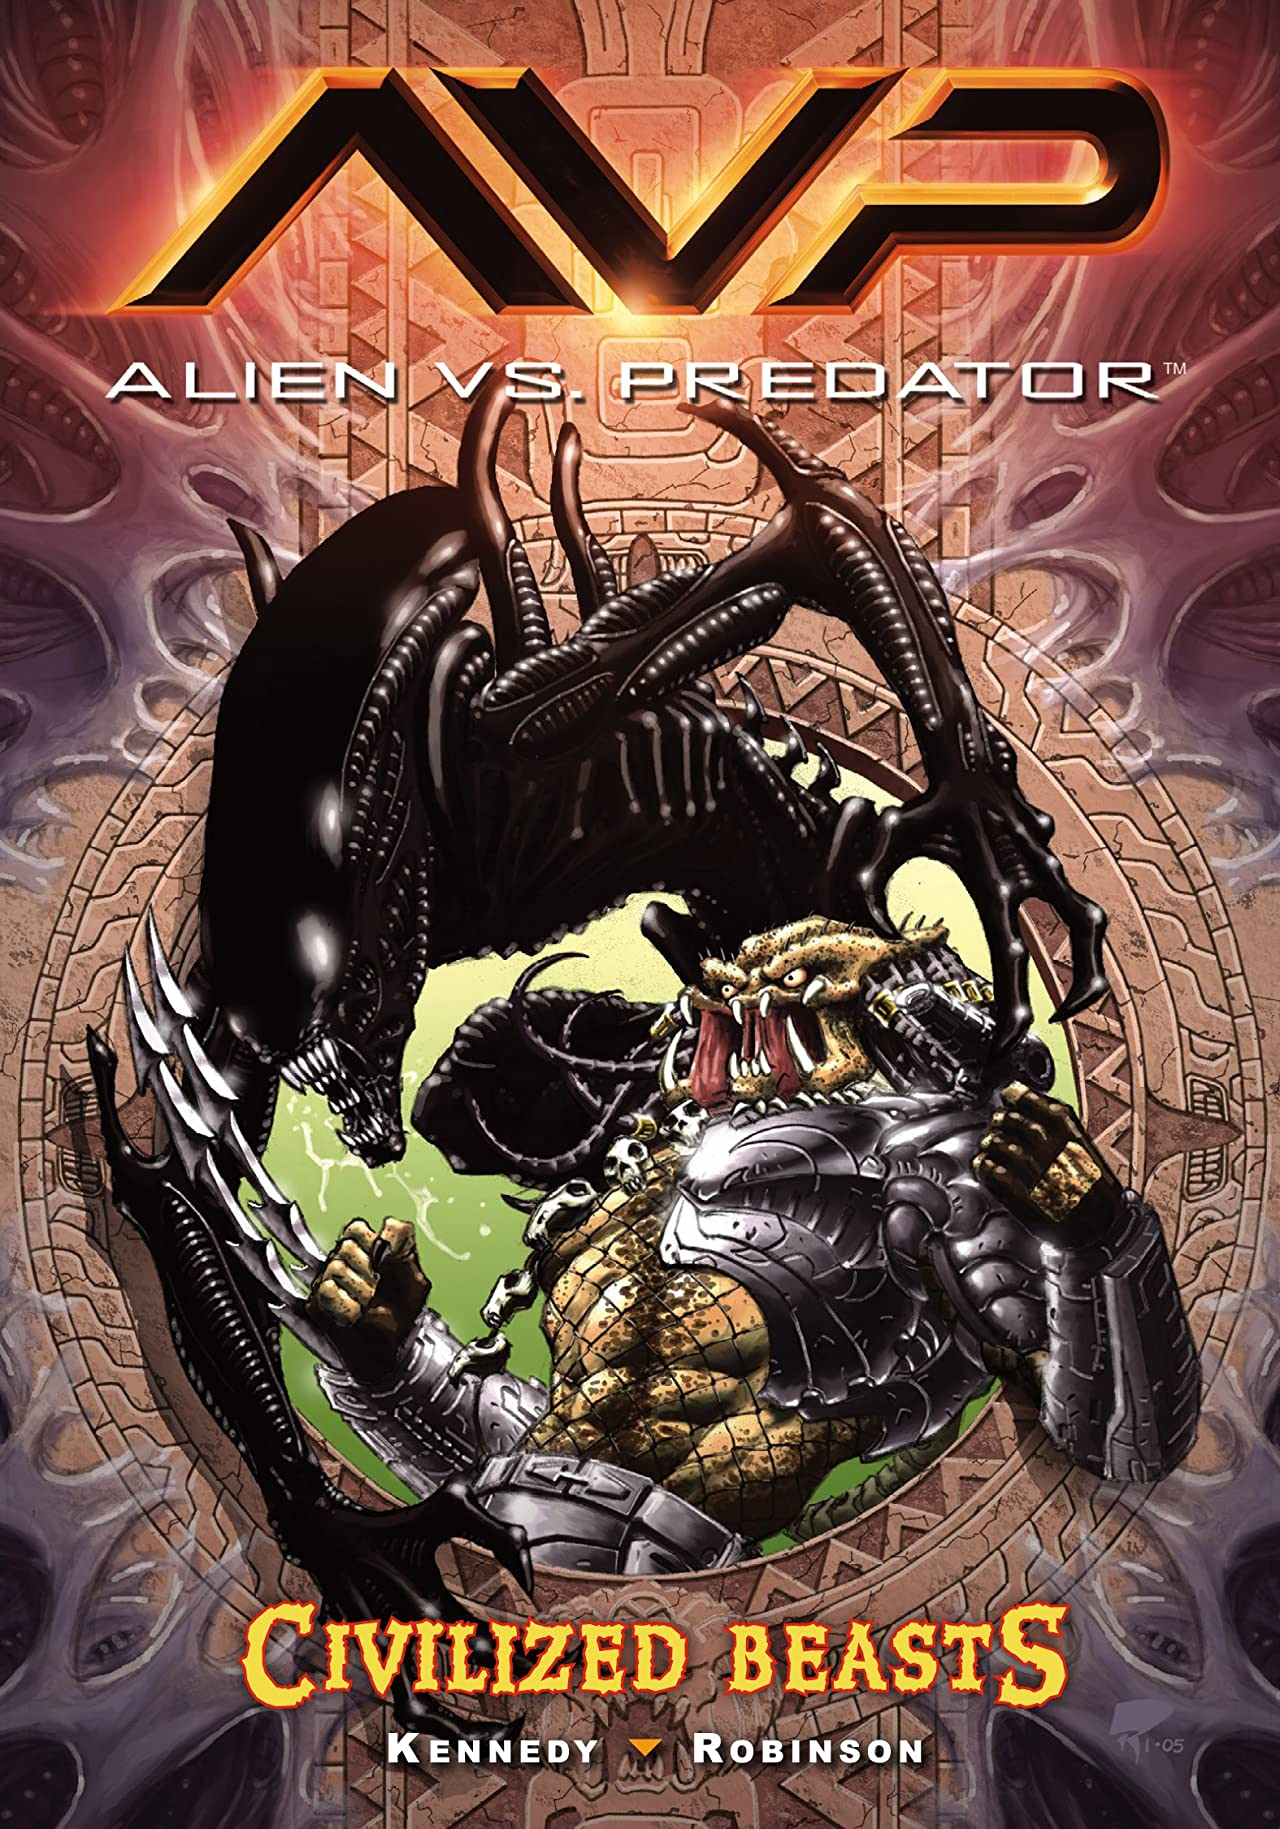 Aliens vs. Predator Vol. 2: Civilized Beasts